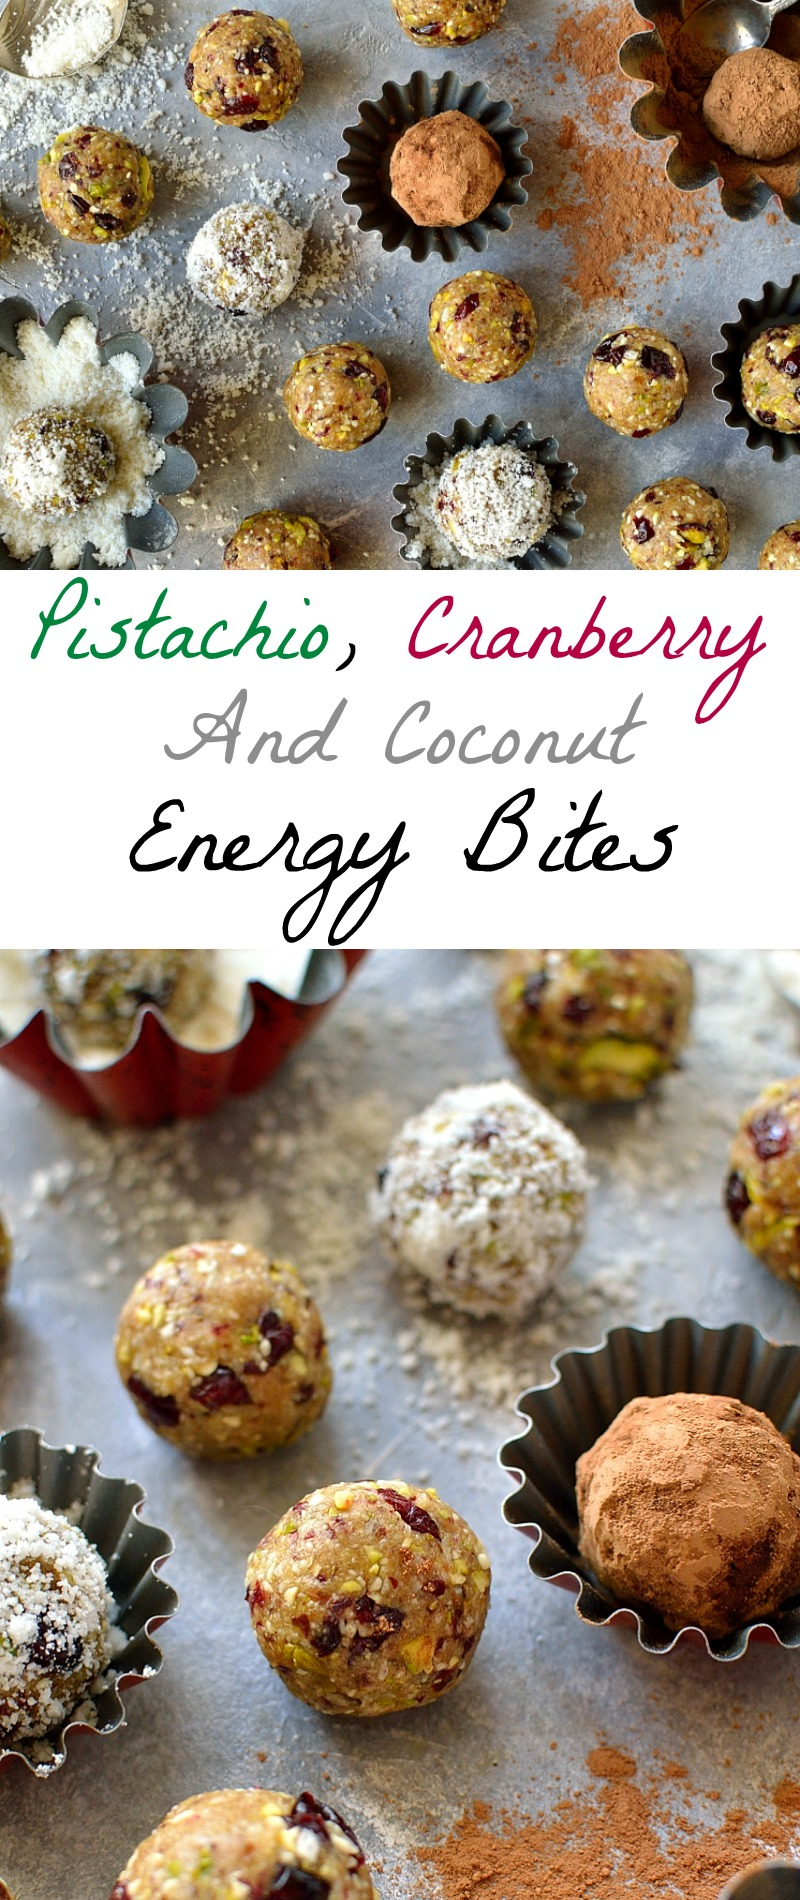 Pistachio, cranberry and coconut energy bites - easy to make energy bites that are high in protein and will keep you going!